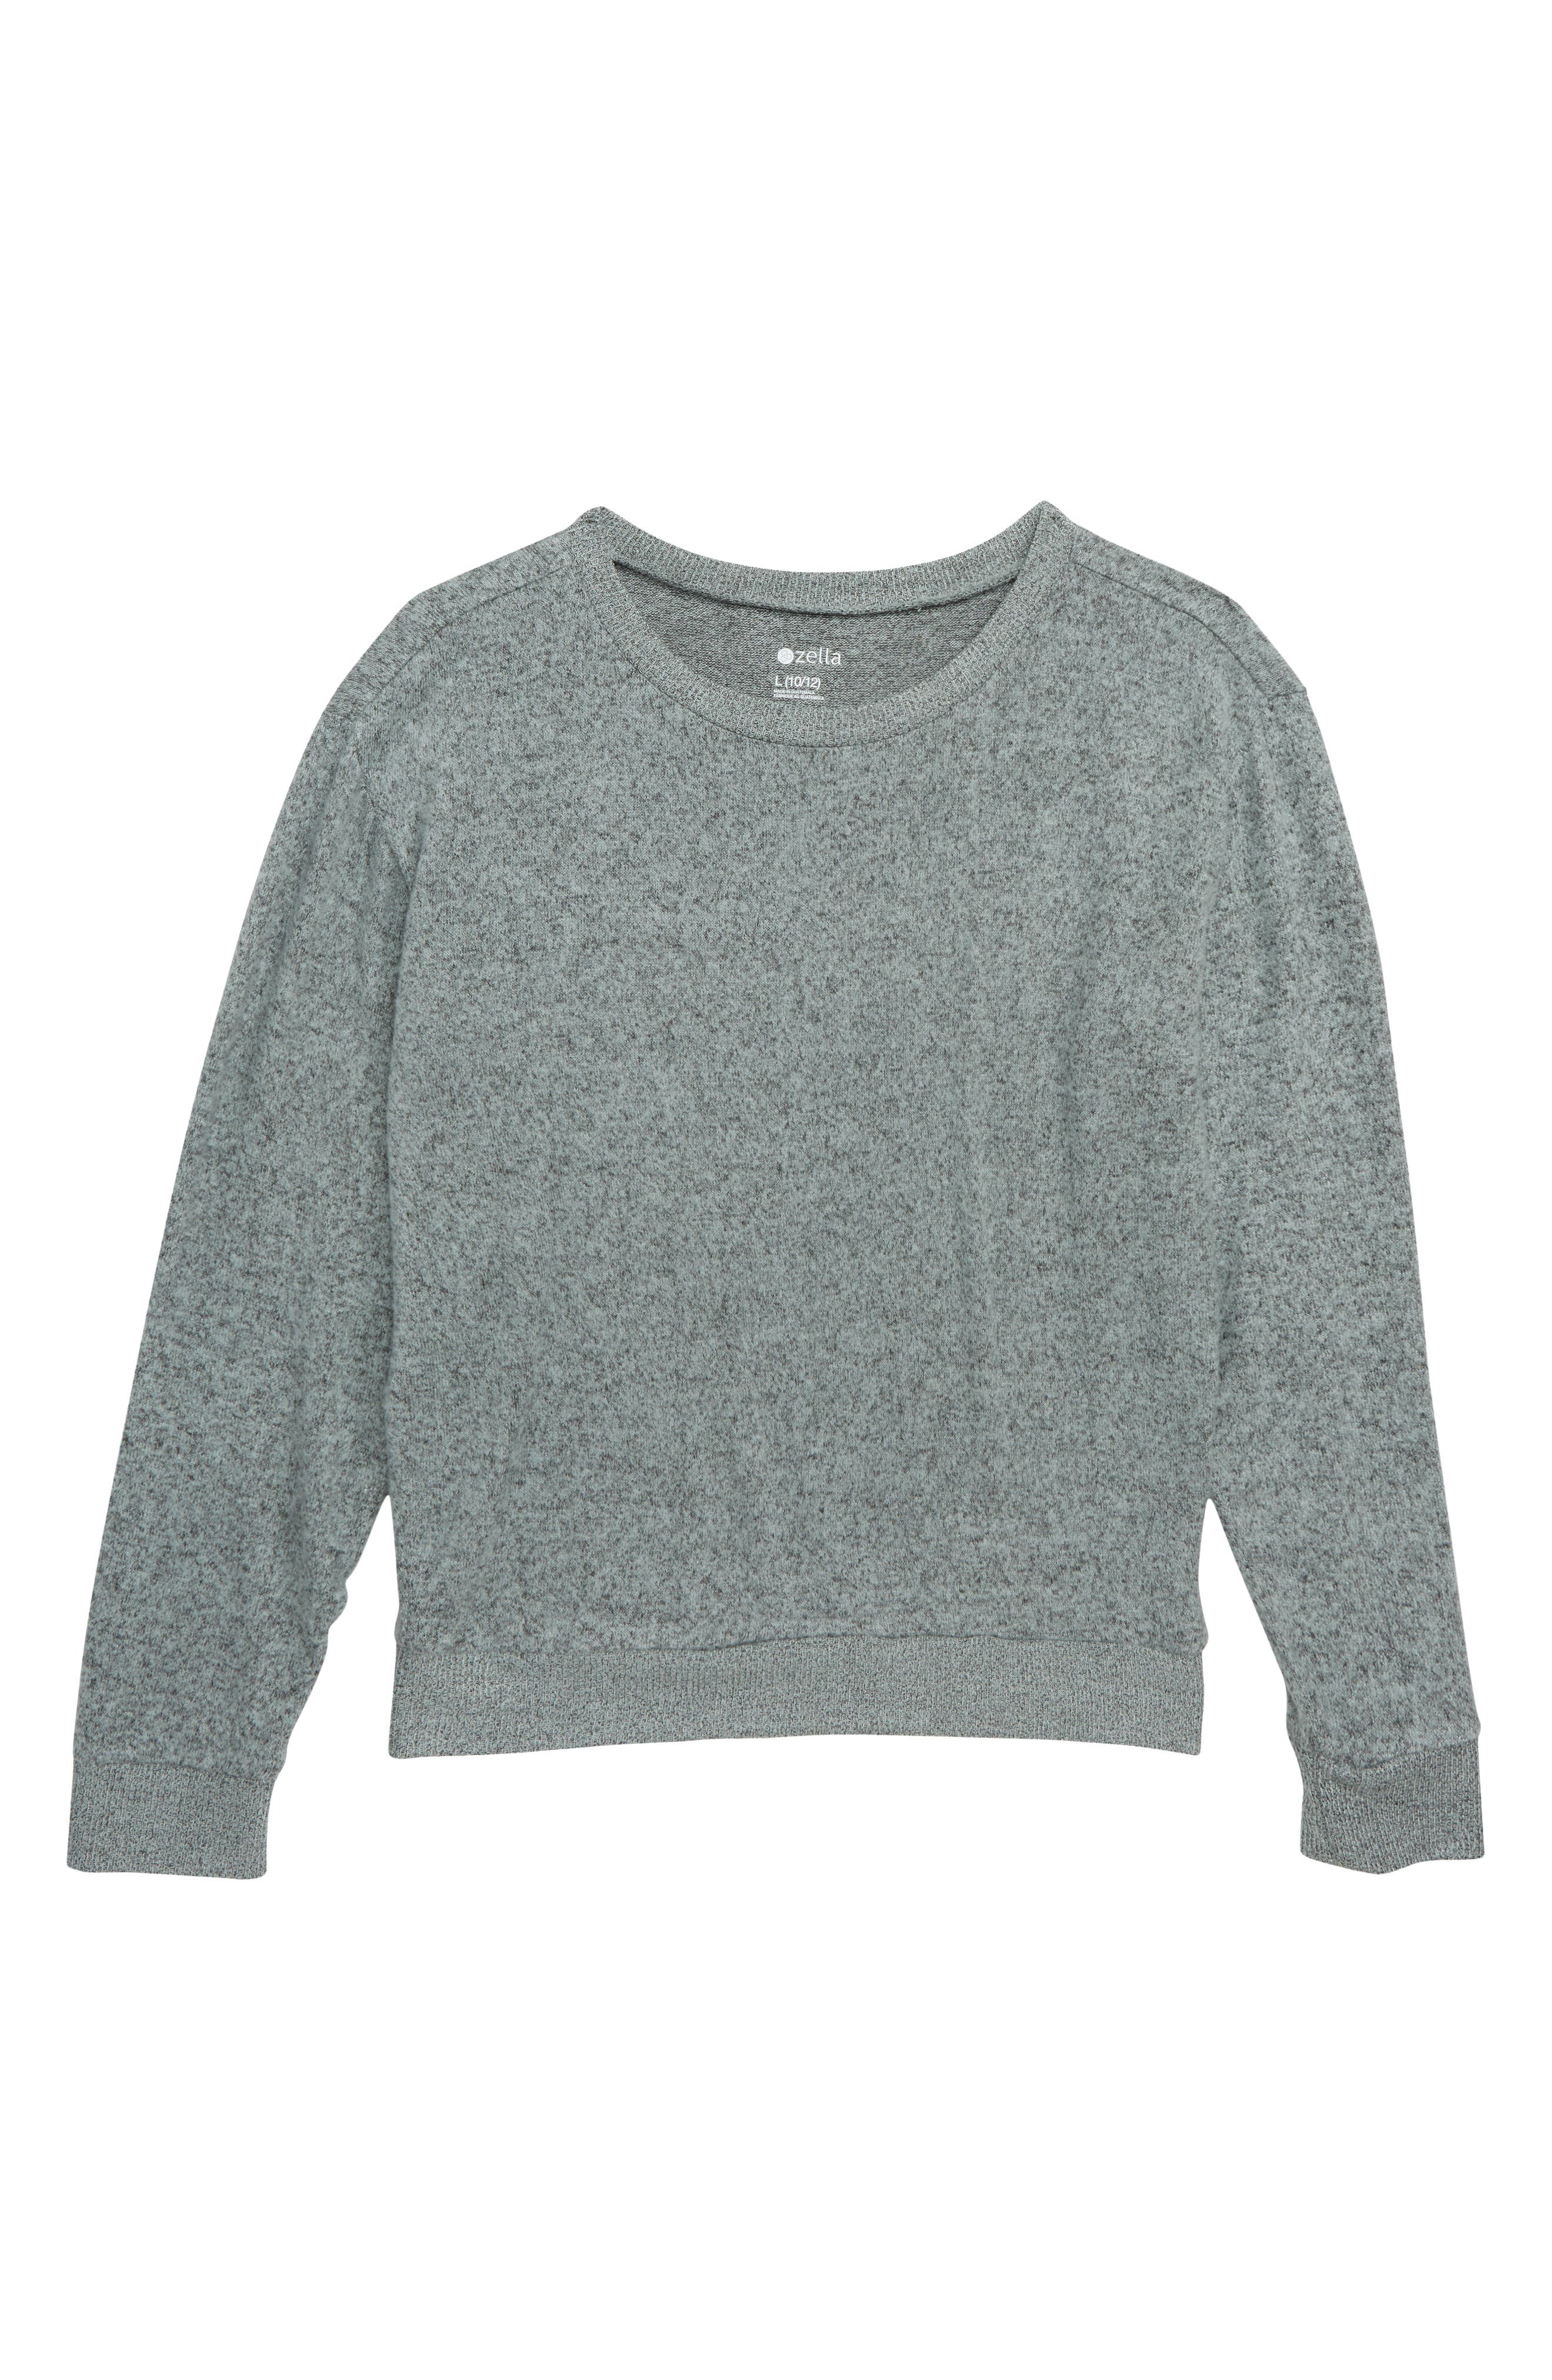 Supersoft Sweater,                         Main,                         color, 001